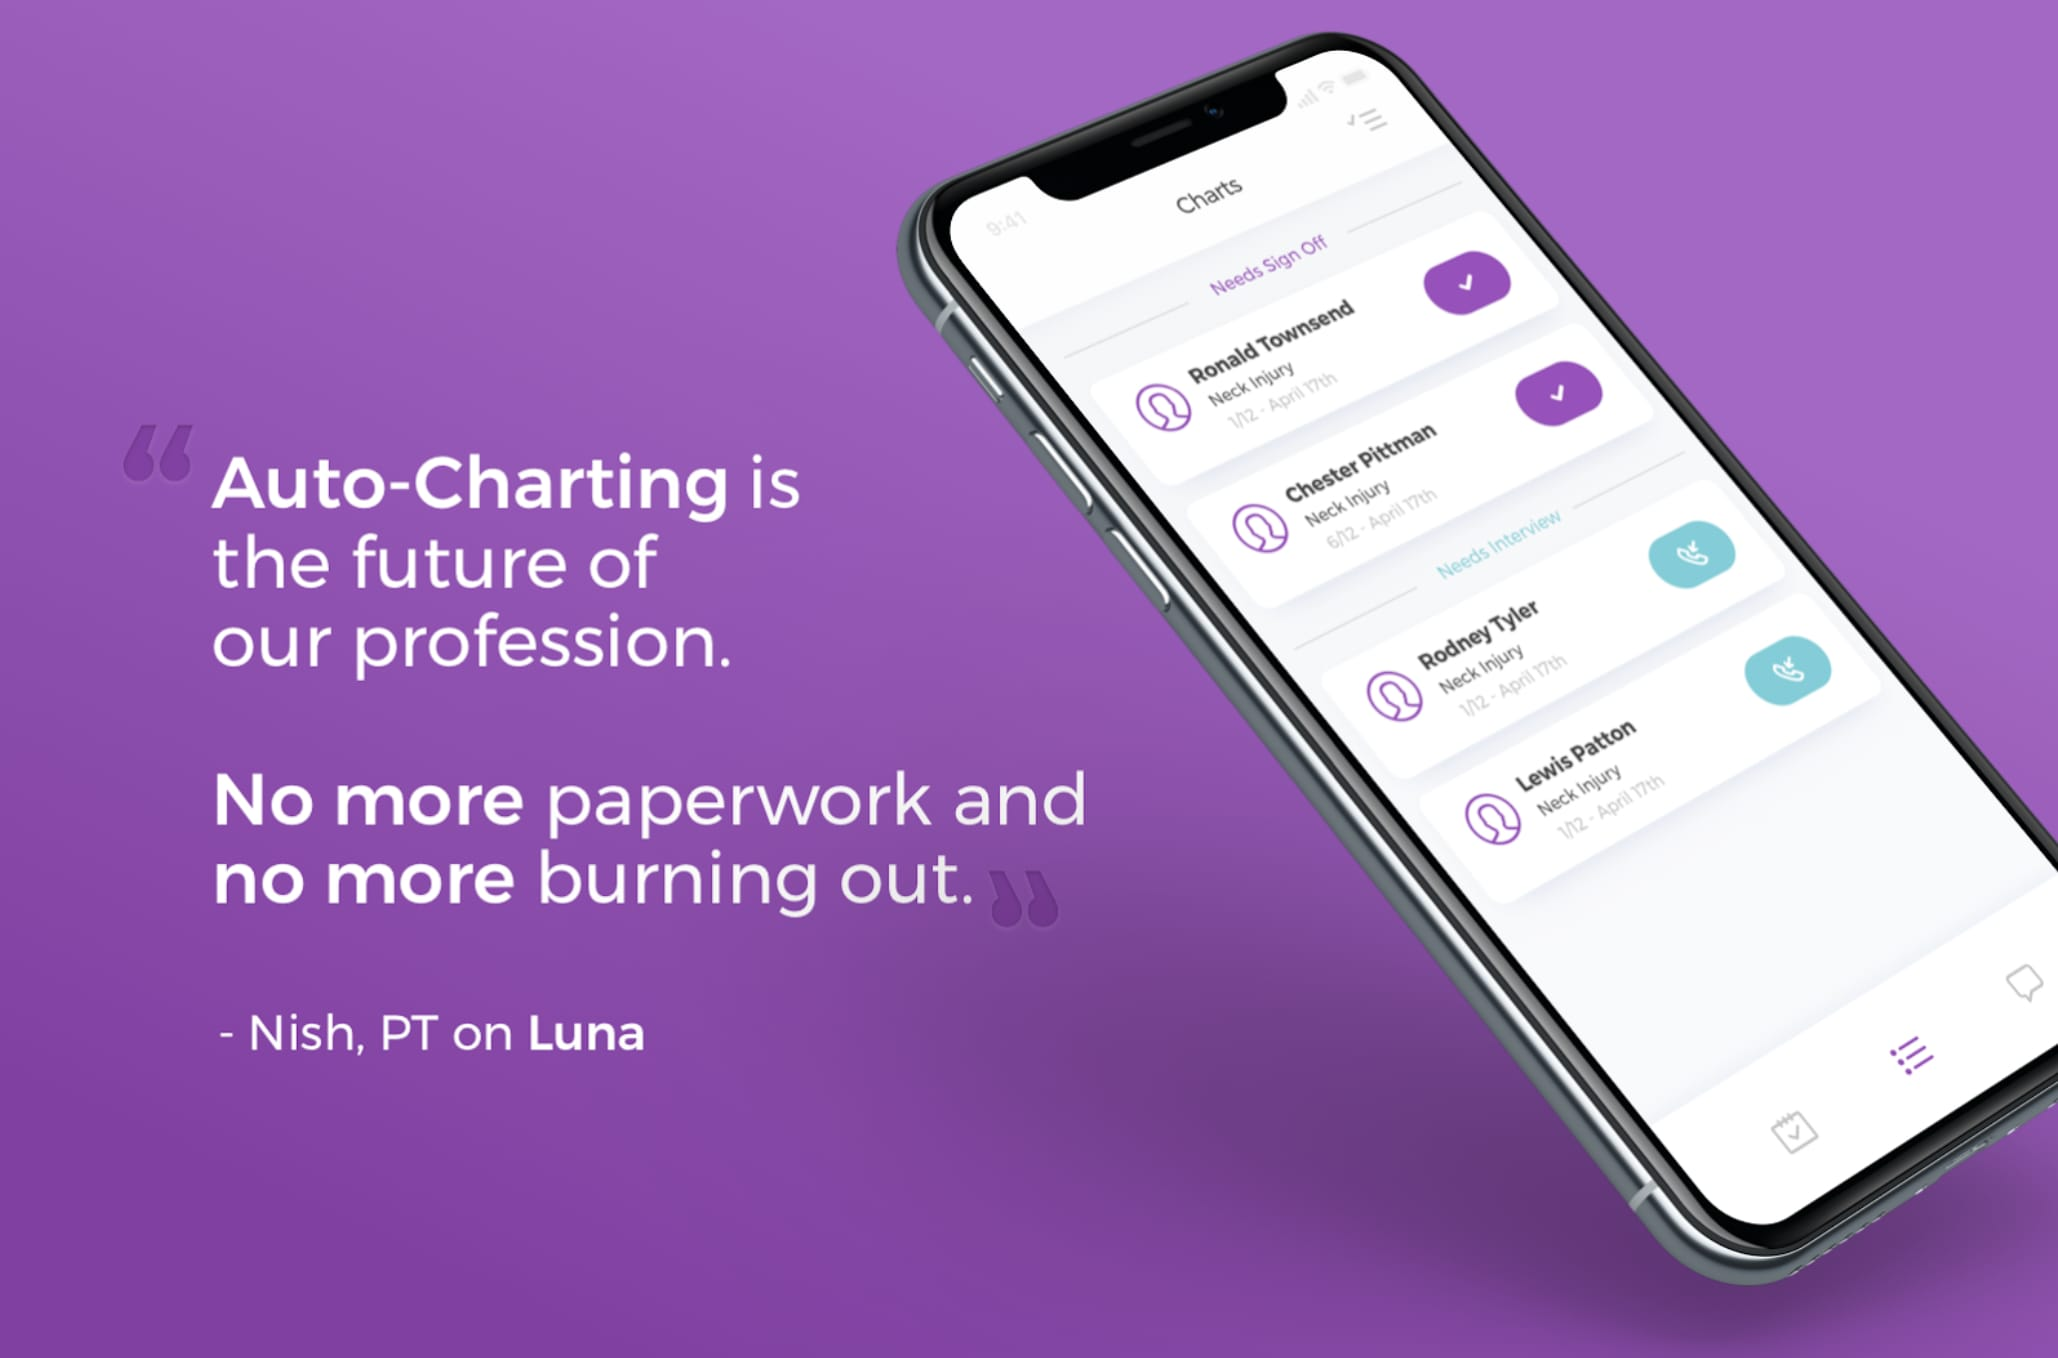 Luna PTs Love to Save Time With Auto-Charting